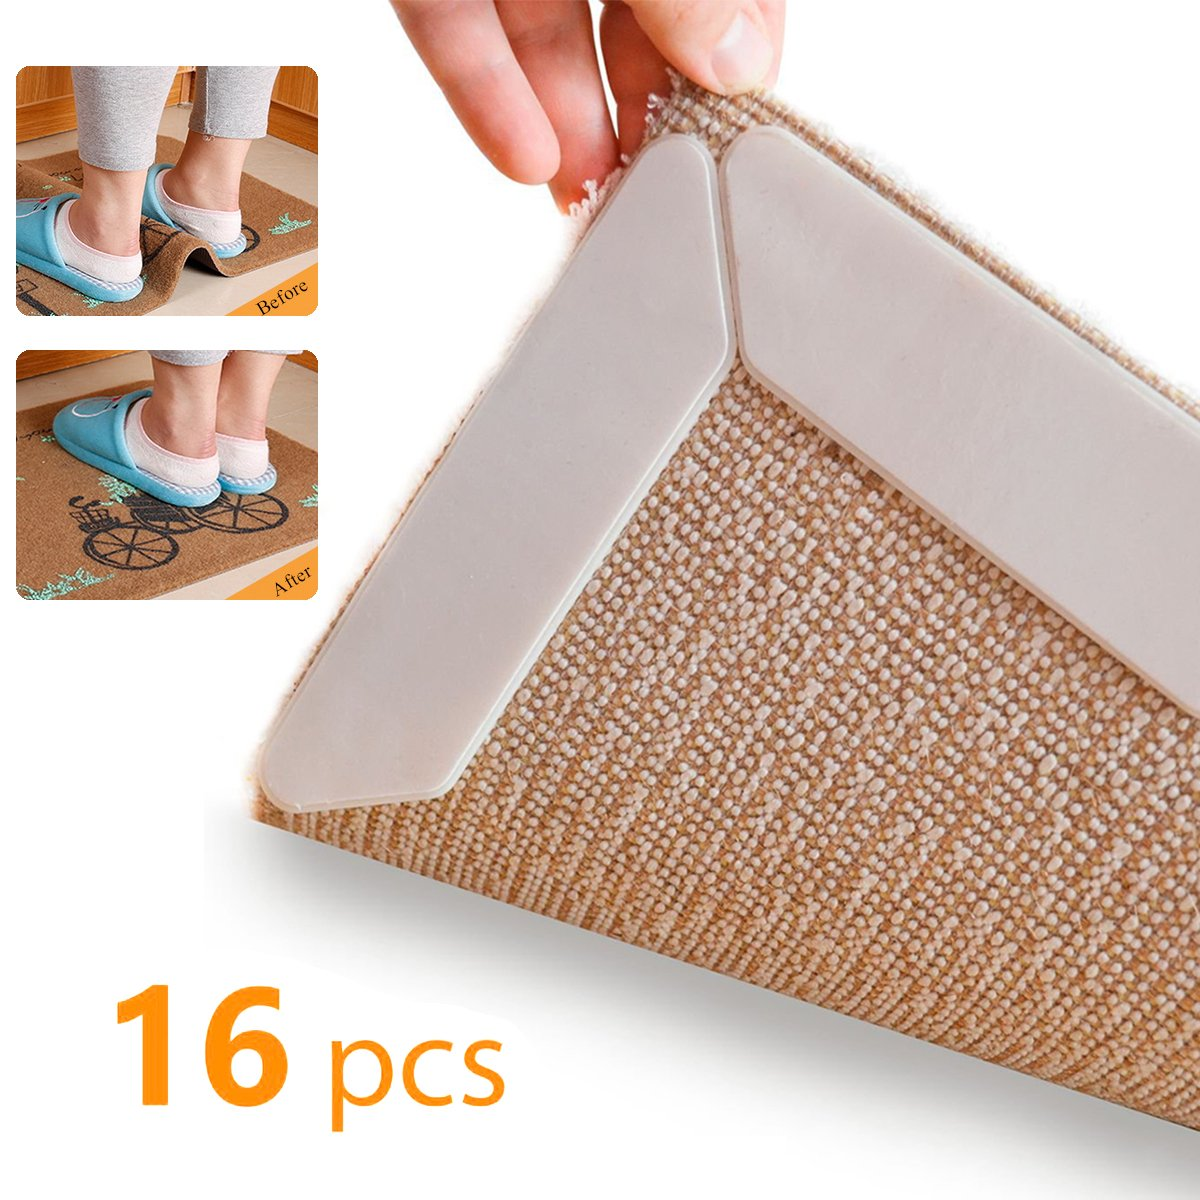 Ousum 16 PCS Rug Grippers Reusable Anti Slip Carpet Underlayments Keep Your Carpet Flat with Strong Sticky Double Sided, No Damage To Your Hard Floor